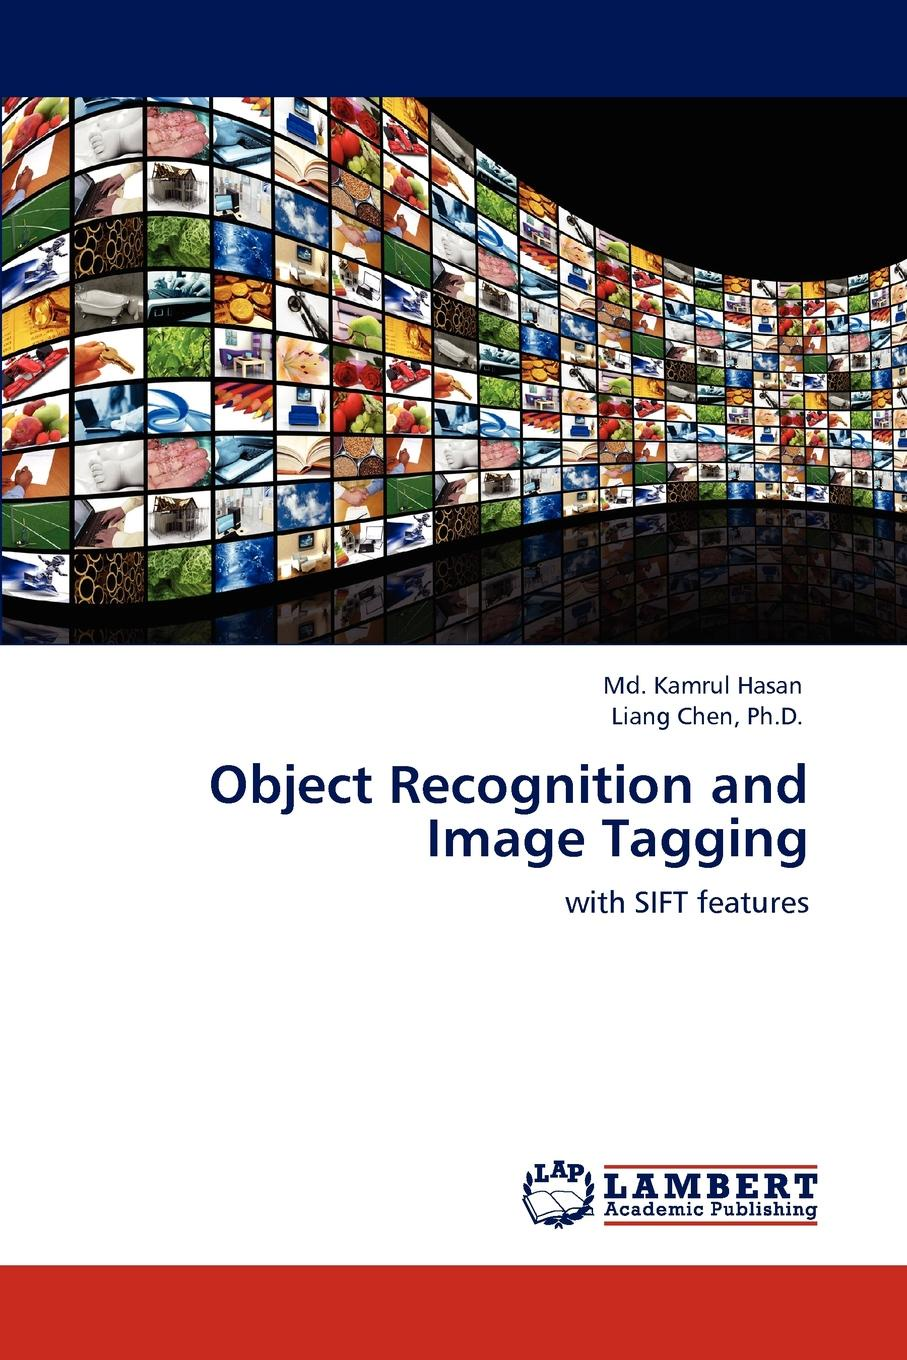 MD Kamrul Hasan, Ph. D. Liang Chen Object Recognition and Image Tagging semantics